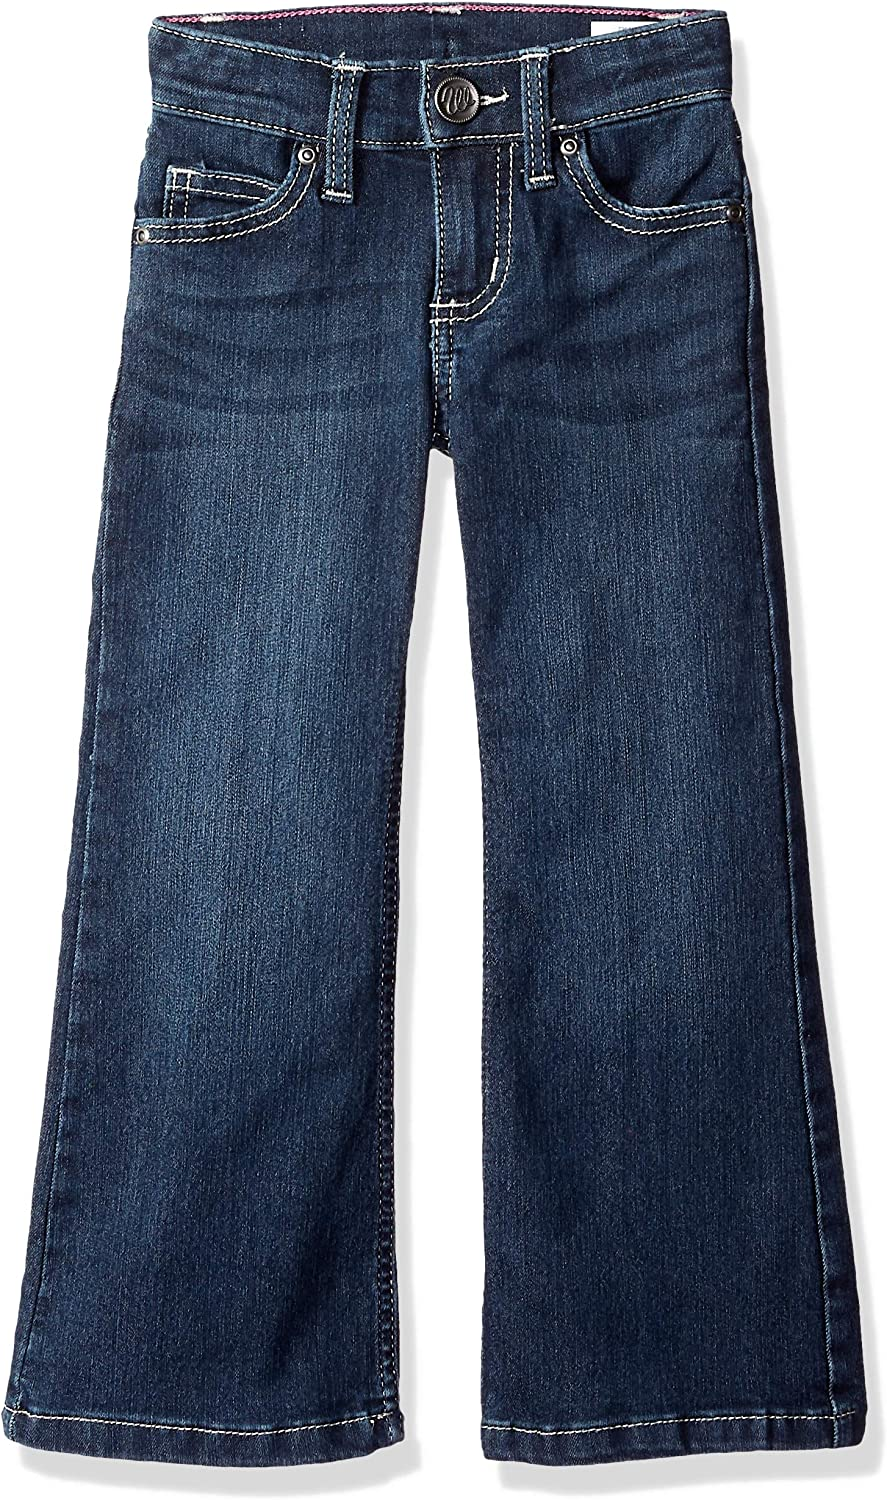 Wrangler Girls' New color Stretch Boot Cut security Jean